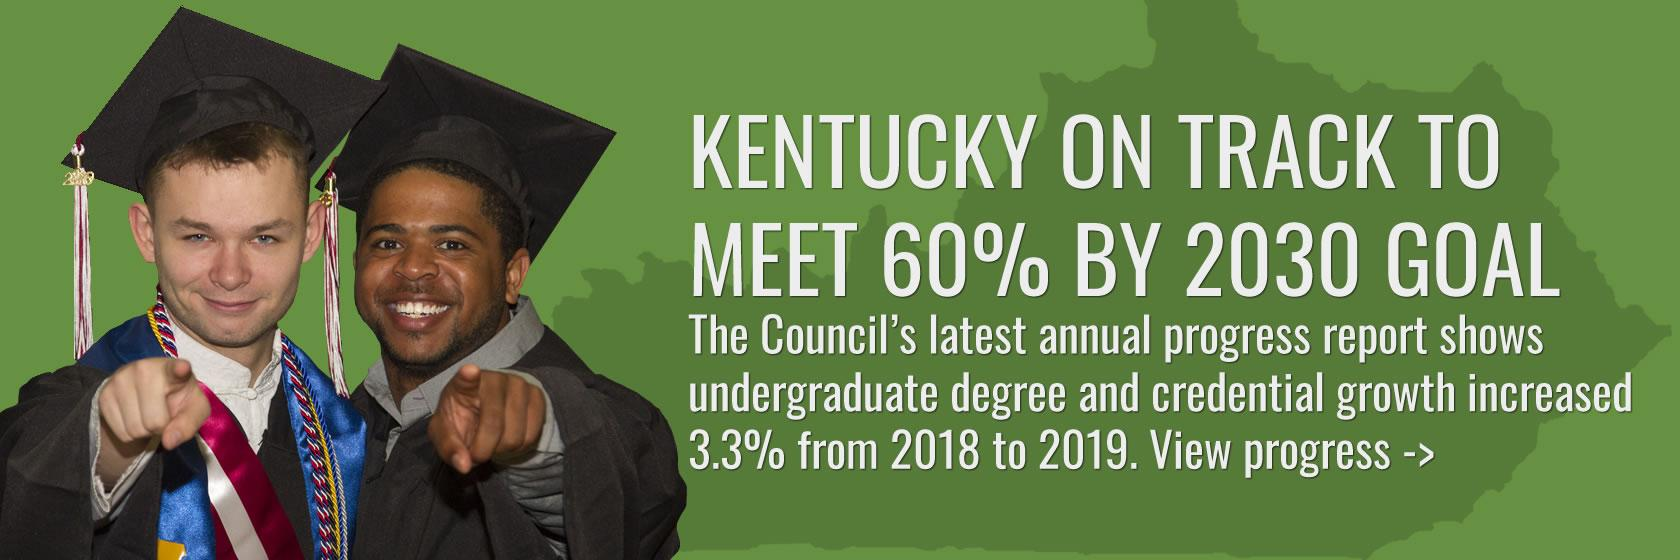 Learn about the progress Kentucky is making toward educational attainment.